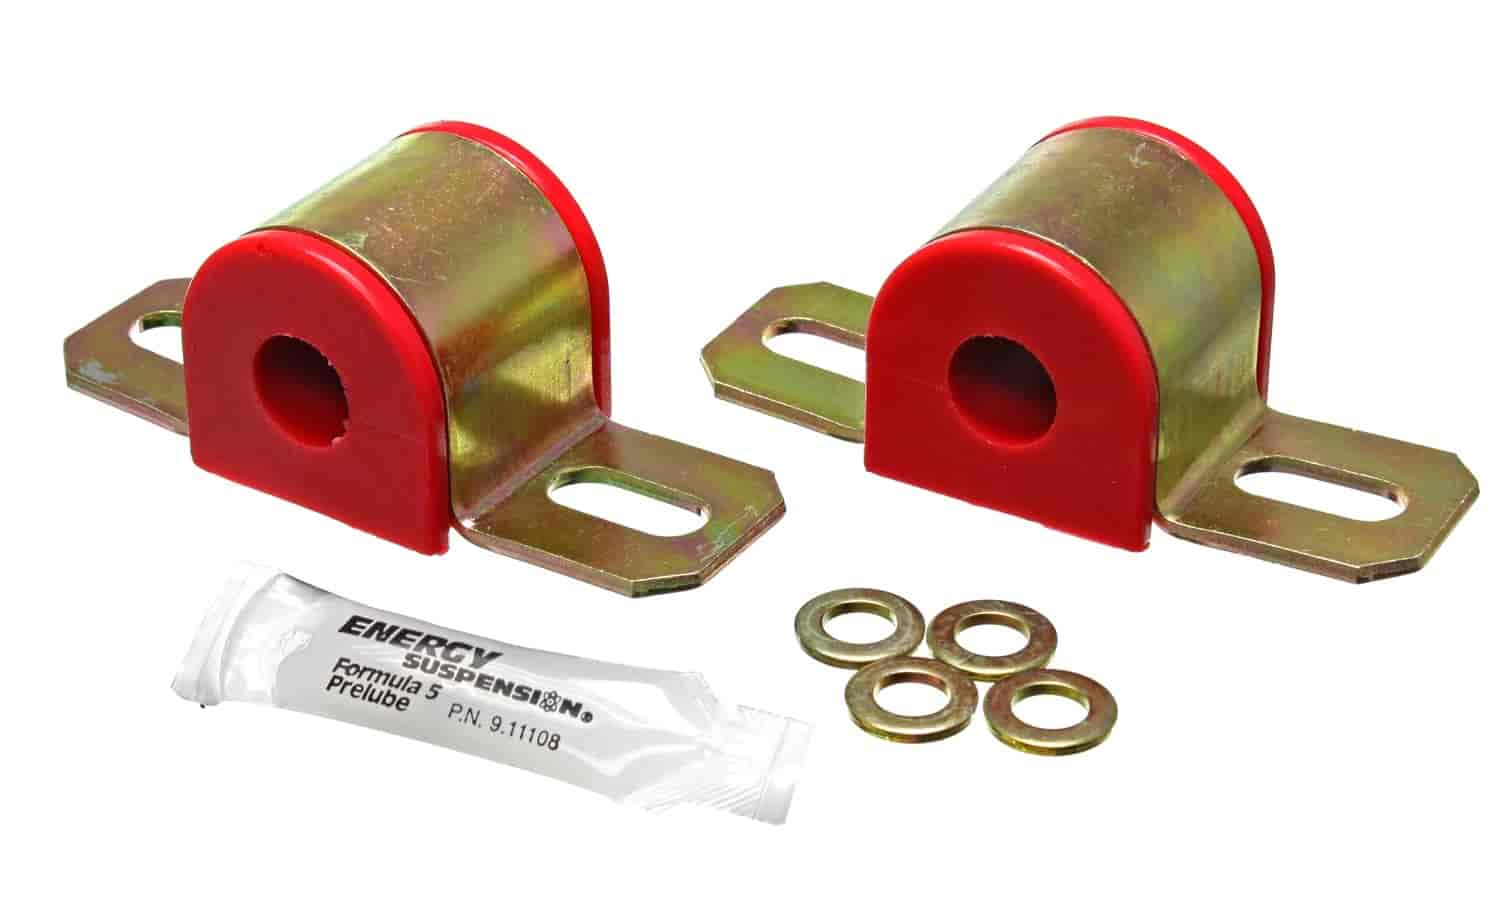 Energy Suspension 9-5102R - Energy Suspension Universal Non-Greaseable Sway Bar Bushings